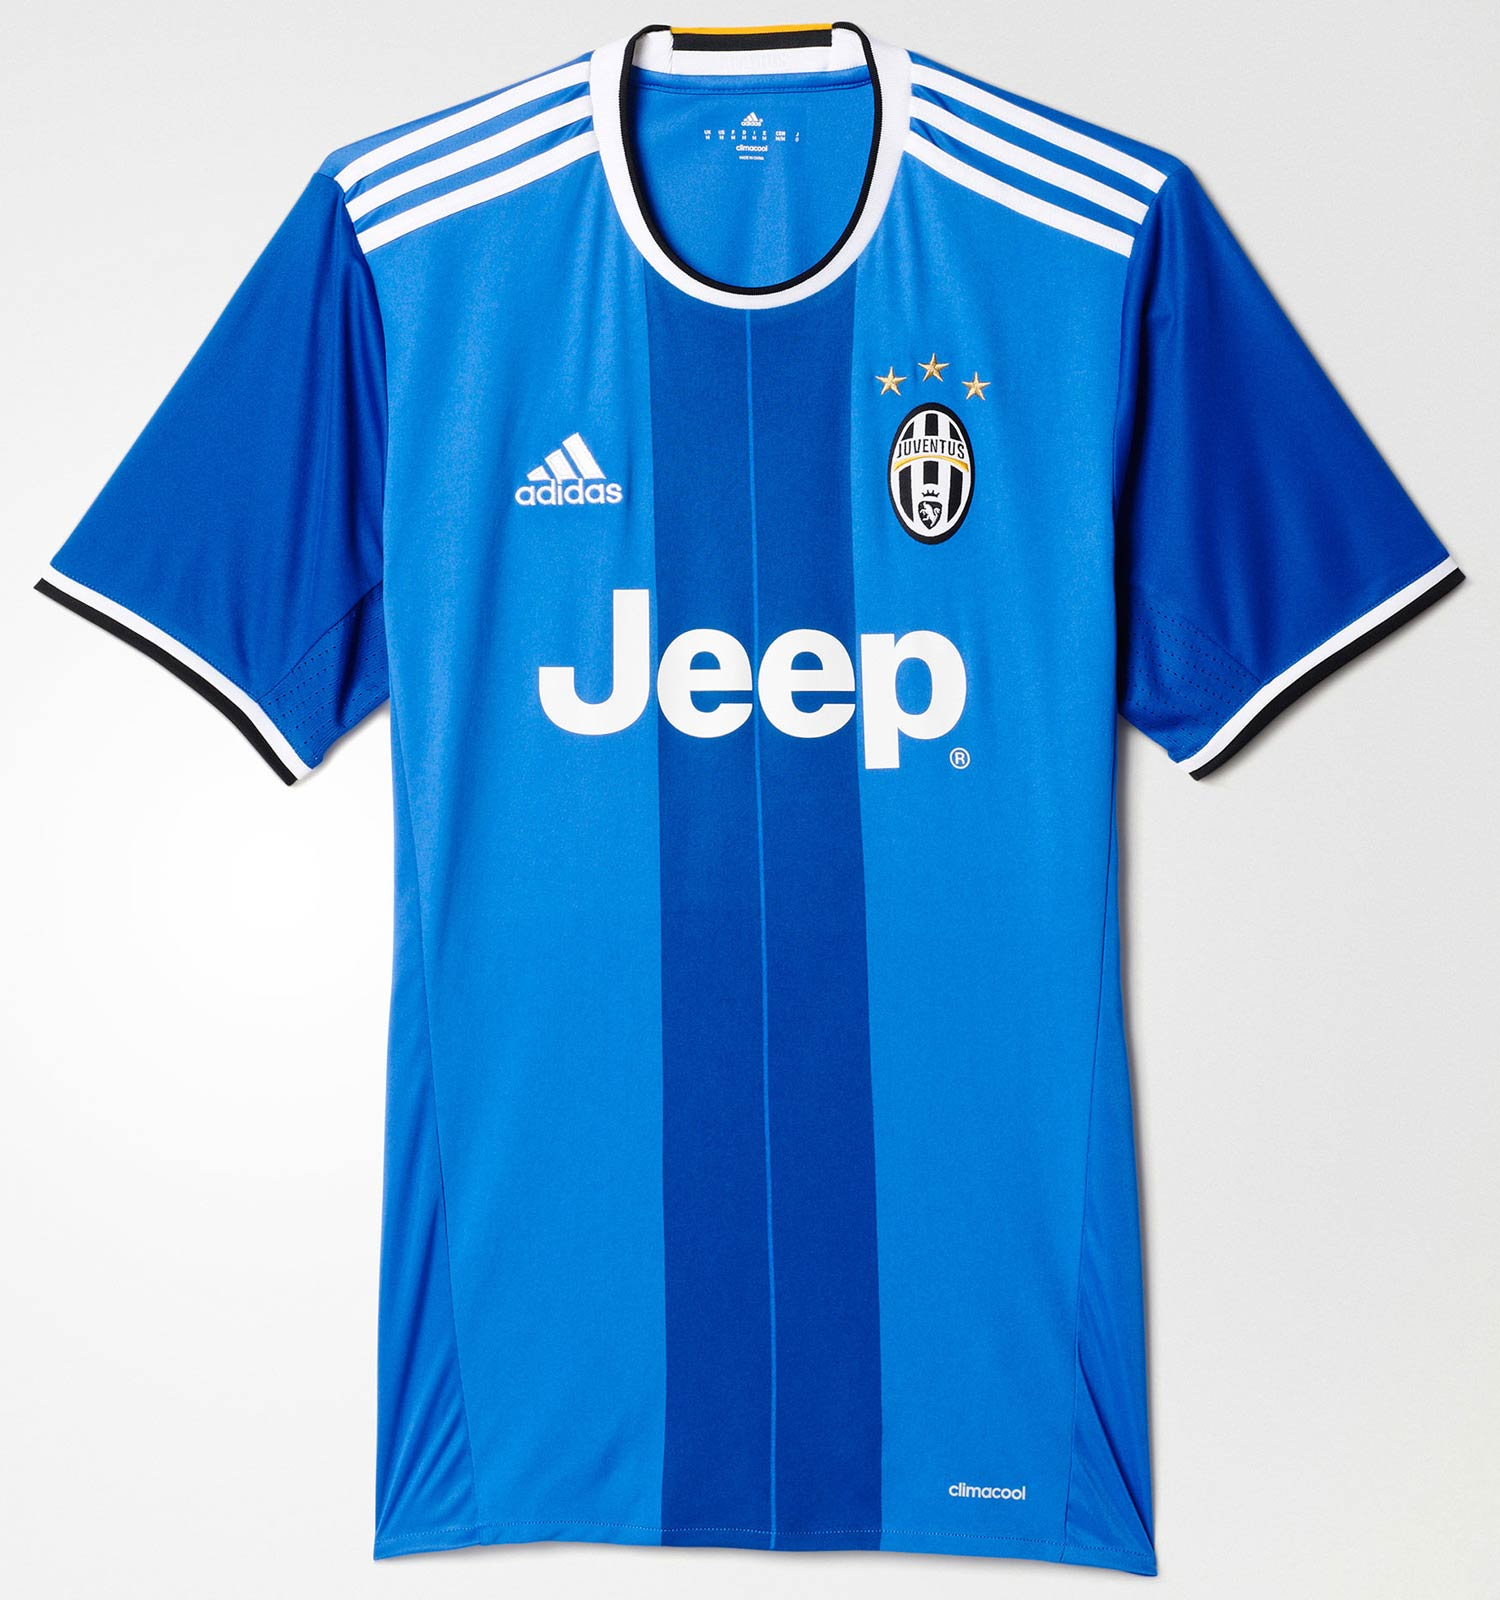 b4fa94ade85 juventus turin jersey on sale   OFF48% Discounts